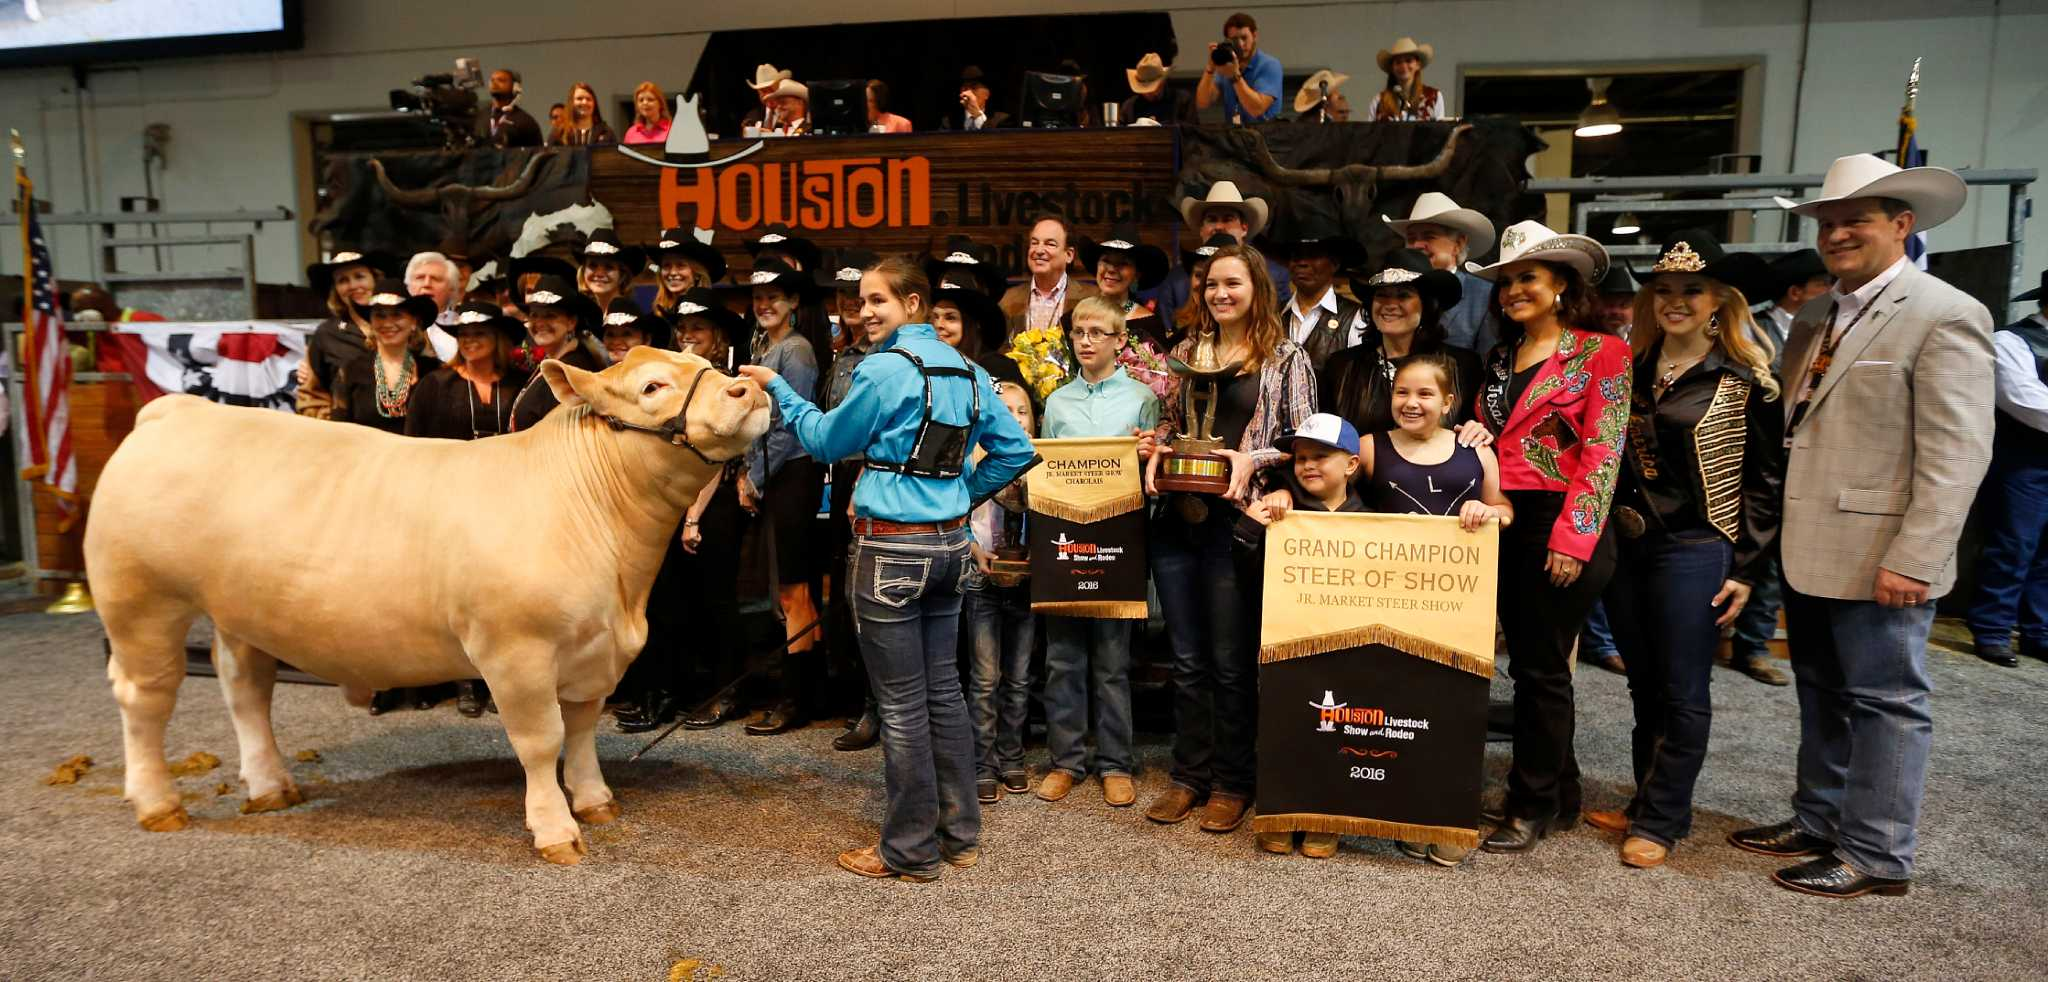 375k For Grand Champion Steer Has Unique Backstory